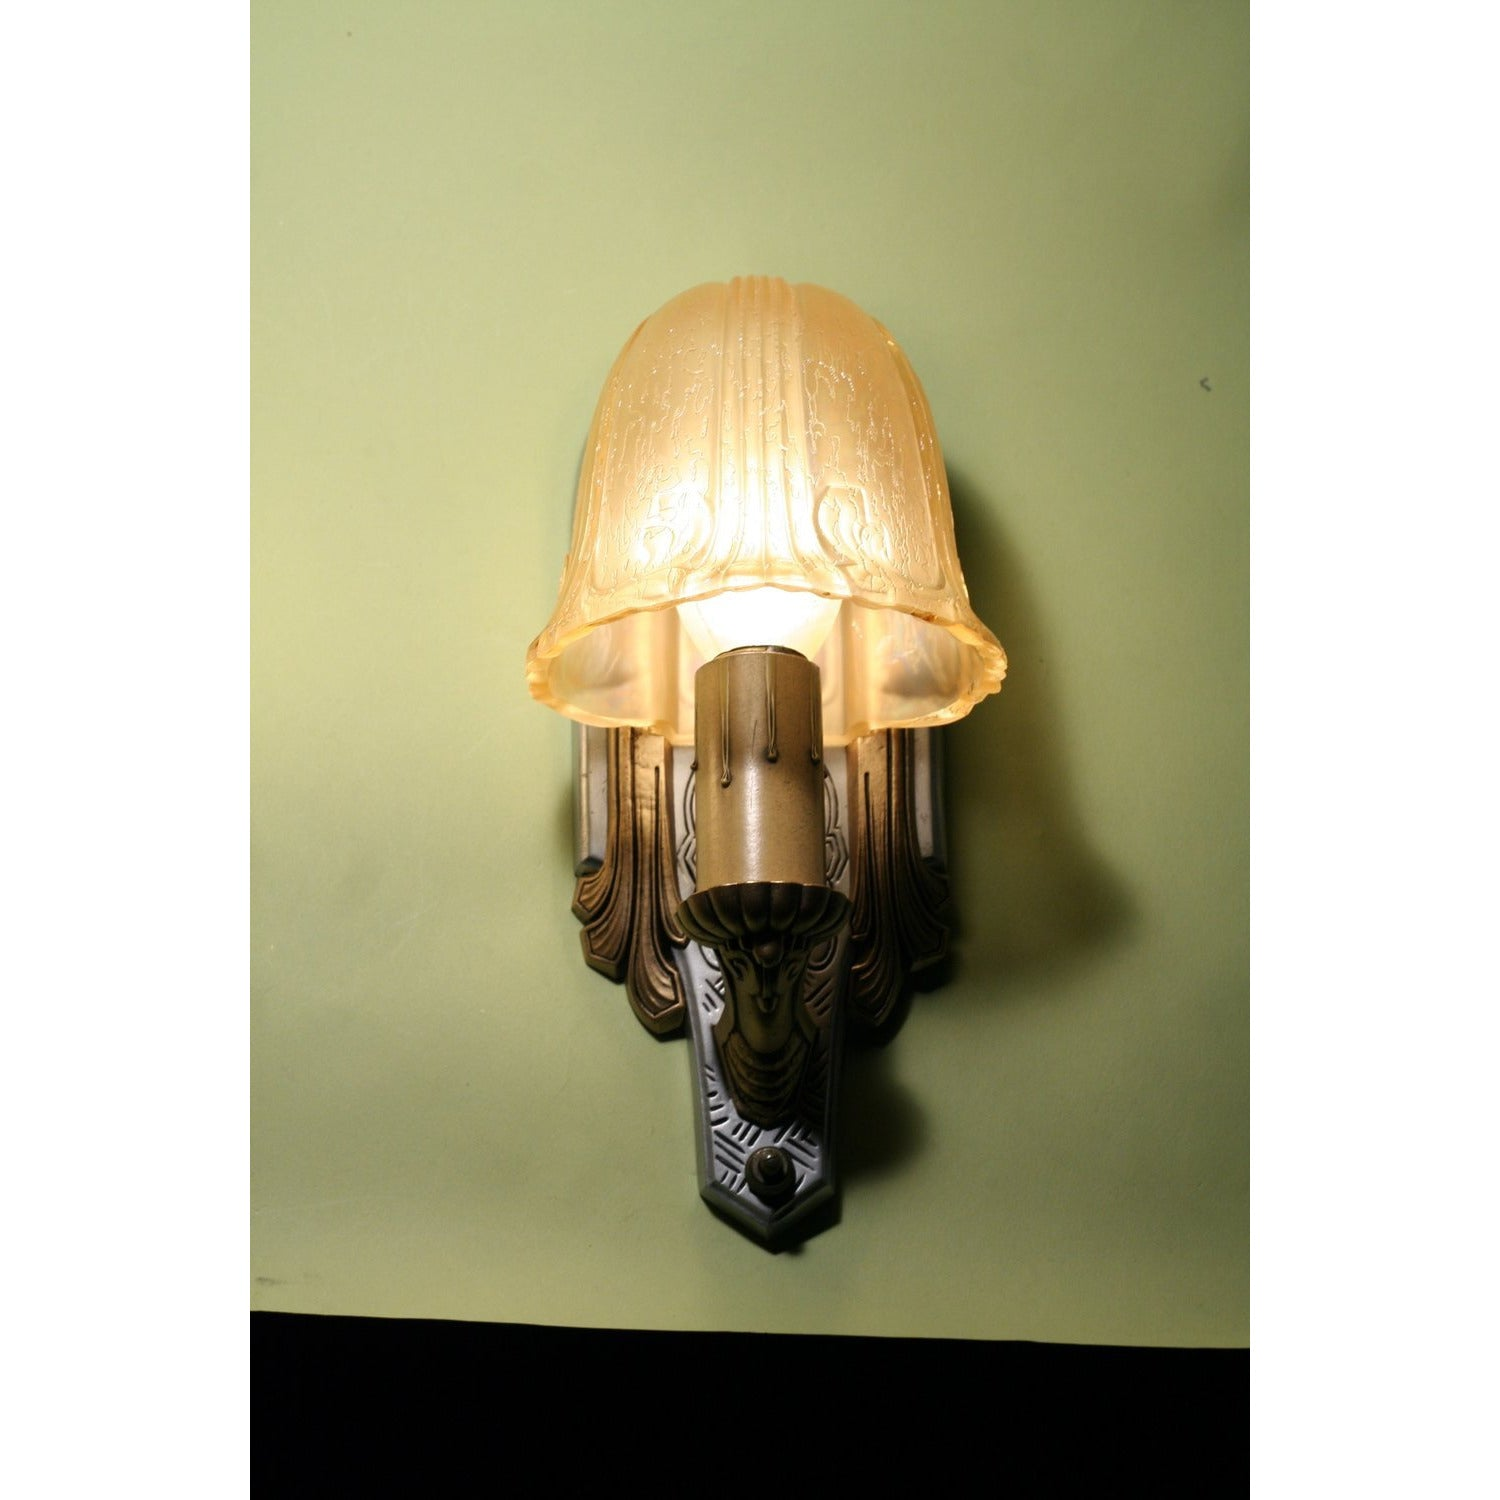 Pair Art Deco Sconce with Amber Shades by Riddle  #1193 - Filament Vintage Lighting